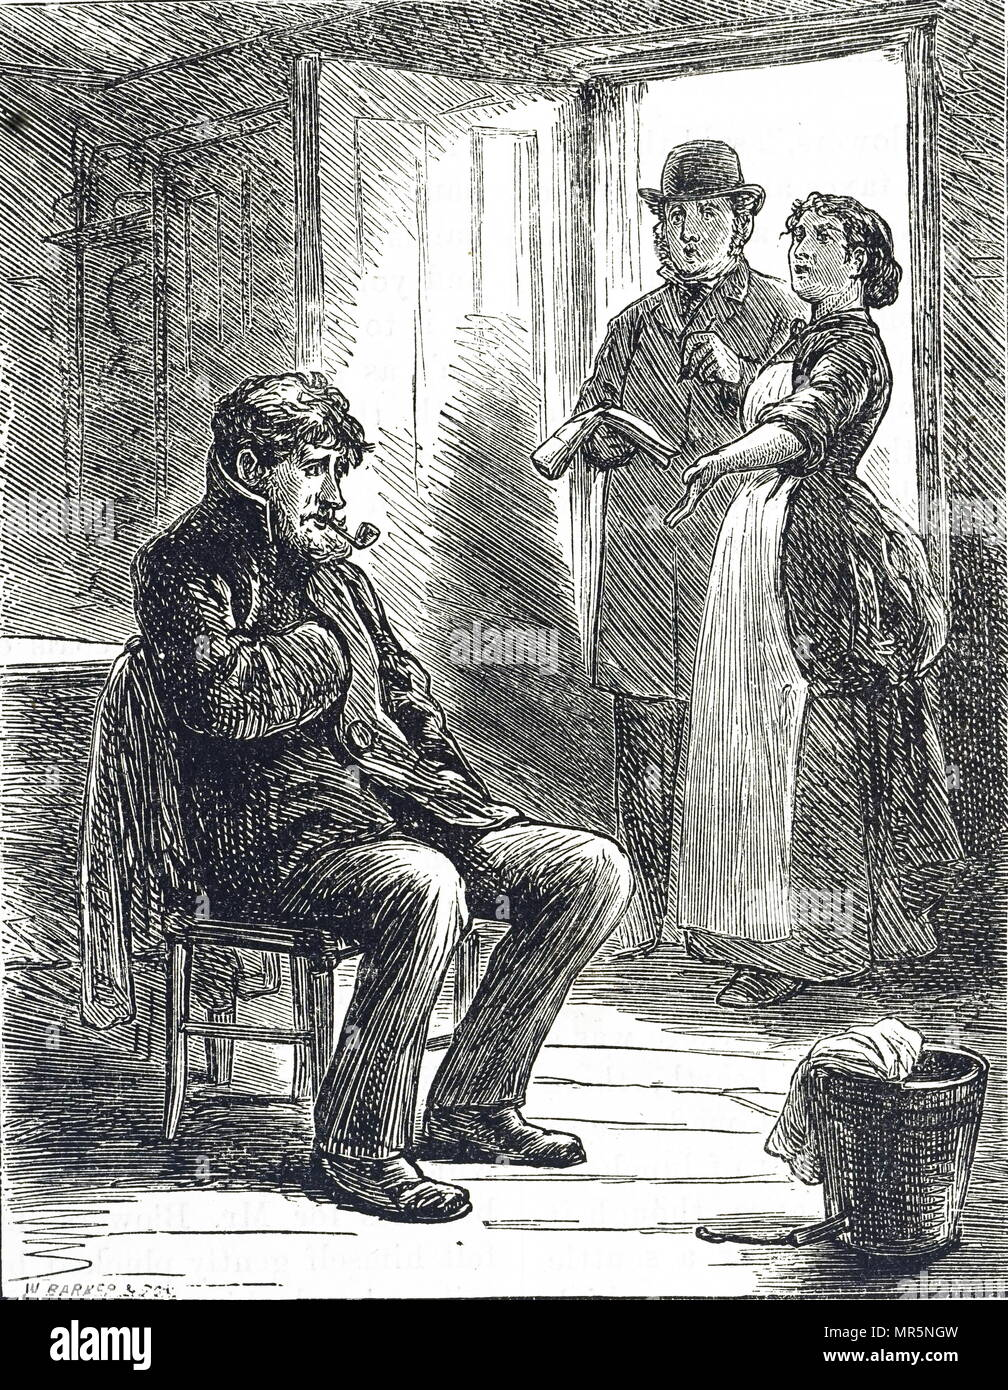 Engraving depicting a rent collector coming for his money. The wife explains that she has no money as her husband smokes all their money. Dated 19th century - Stock Image